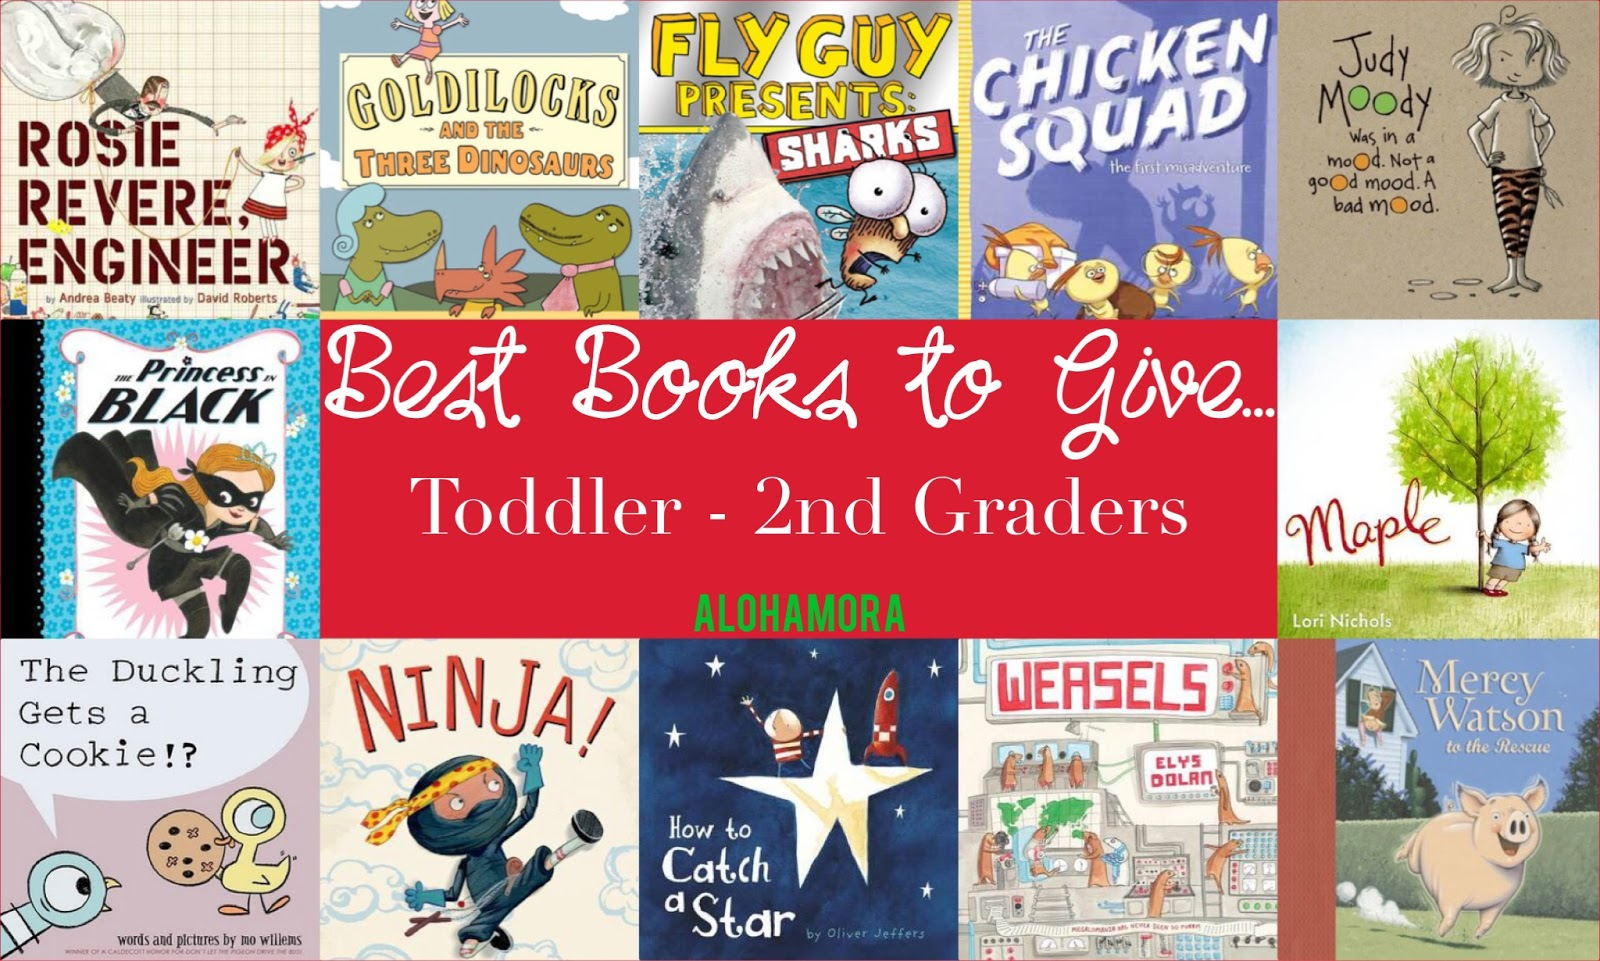 Best Books to Give as Gifts/Presents to Toddlers, Preschoolers, Kindergartners, 1st graders, and 2nd graders. Picture books, early readers aka beginning chapter books, chapter books, and books that both boys and girls will love.  All great books to give for Christmas, Hanukkah, or birthdays.  Alohamora Open a Book http://www.alohamoraopenabook.blogspot.com/